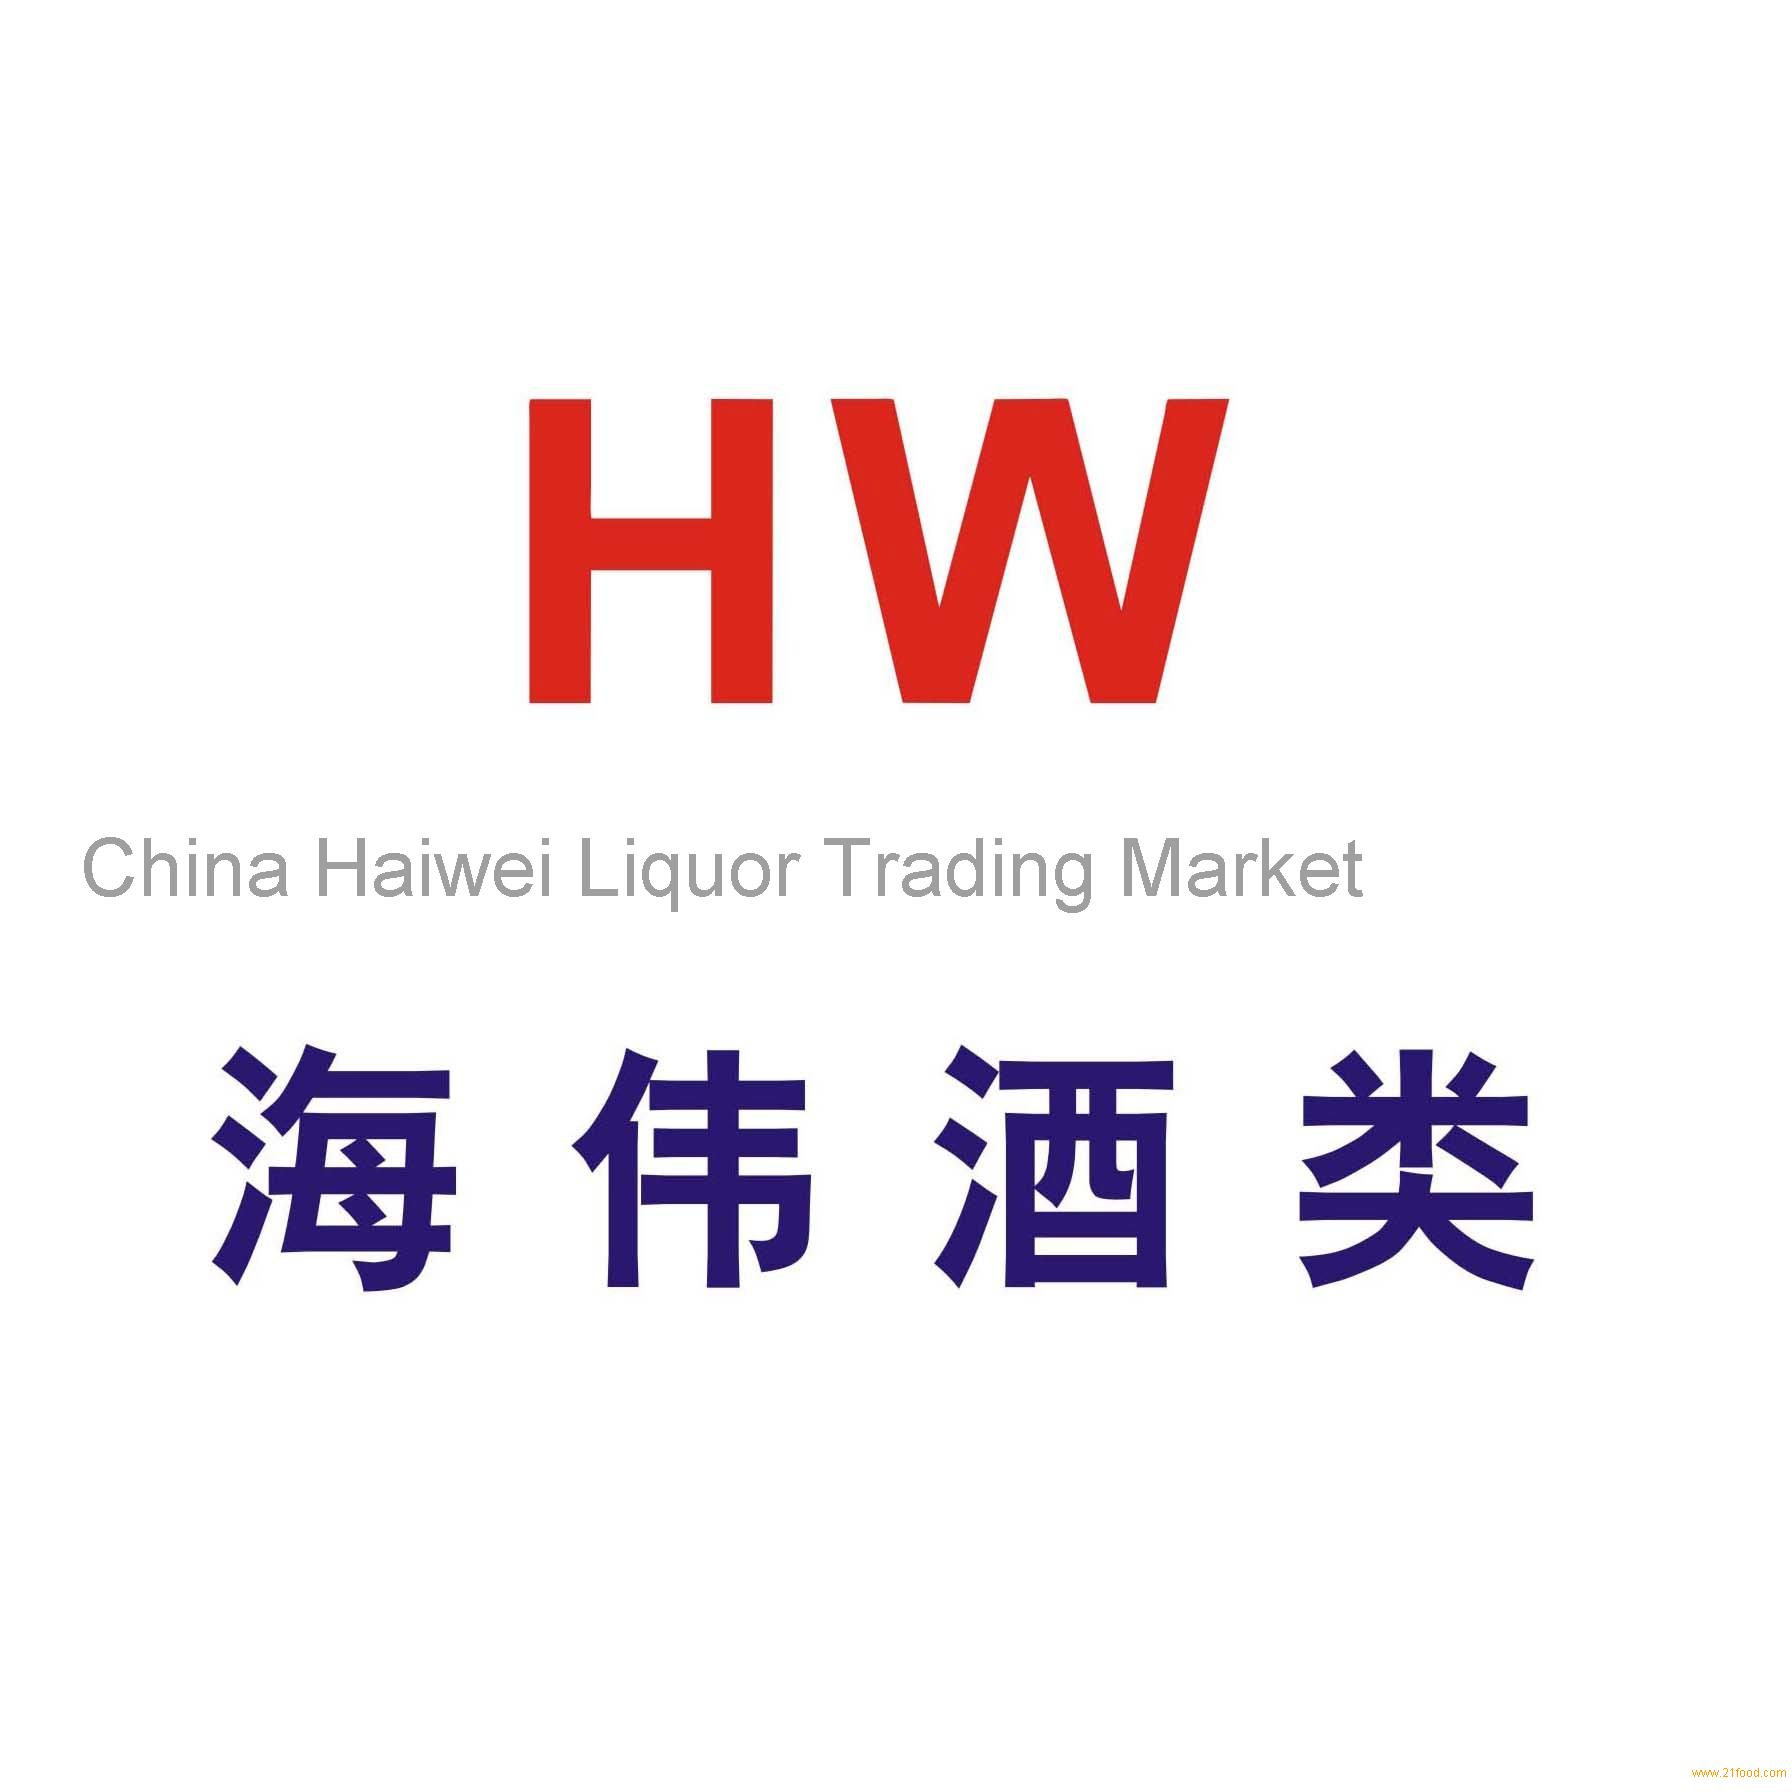 international makreting entering the wine market The asian wine market: a case study  relationship-marketing approaches may be the most successful for establishing wine sales in  market for wine was.